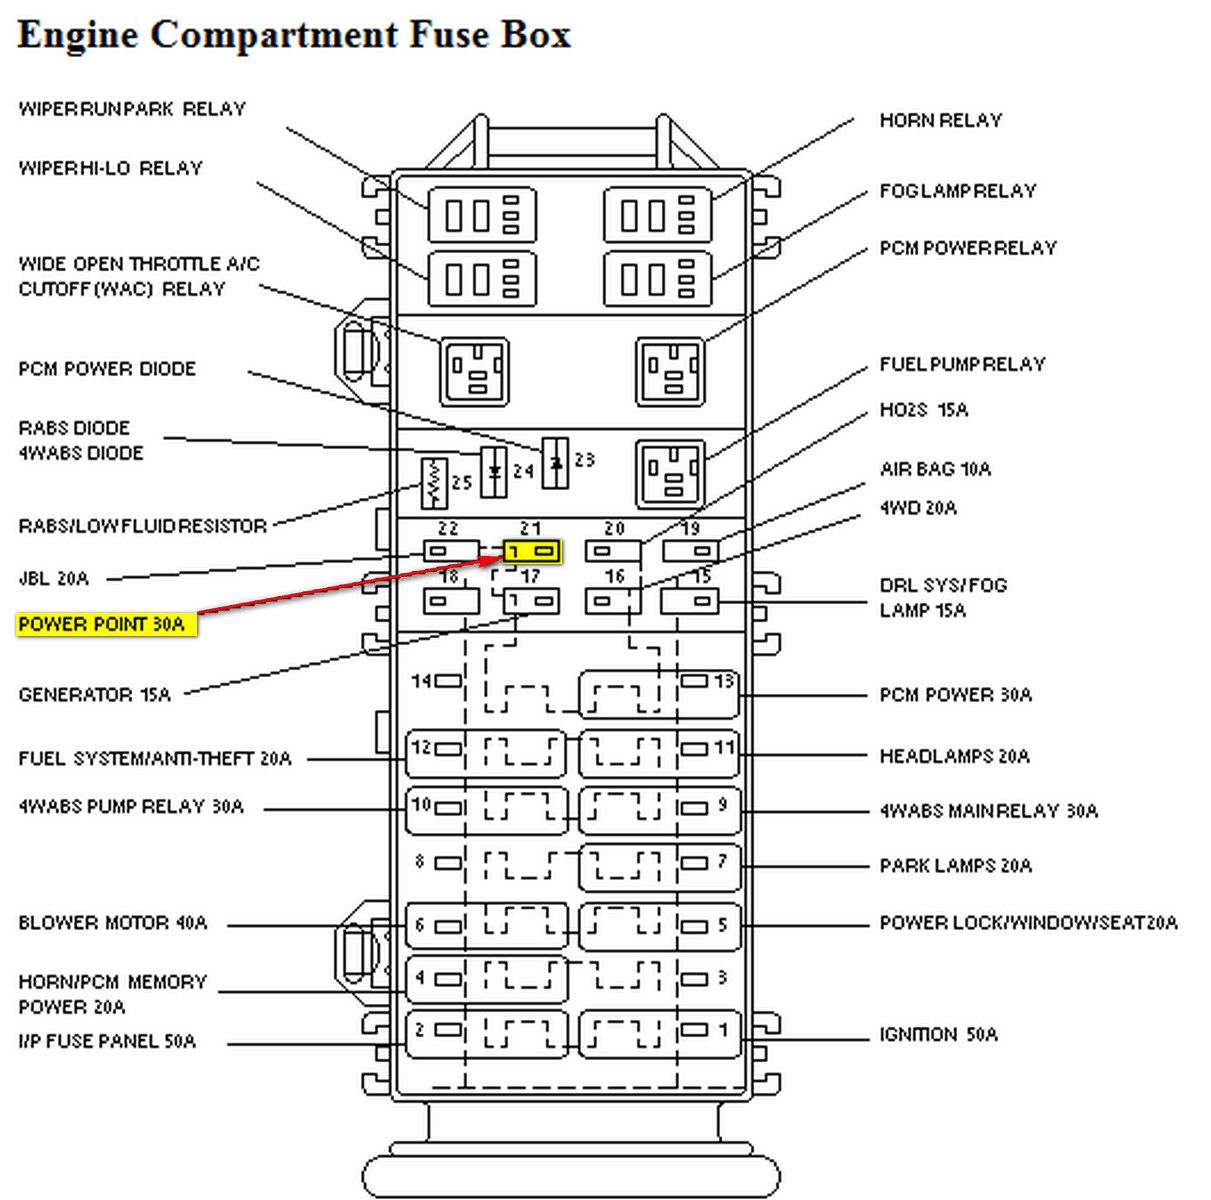 8a55967da7ae1bd251b795845886bd24 2002 ford ranger fuse diagram 1997 ford ranger fuse box diagram 2012 ford taurus fuse box diagram at crackthecode.co